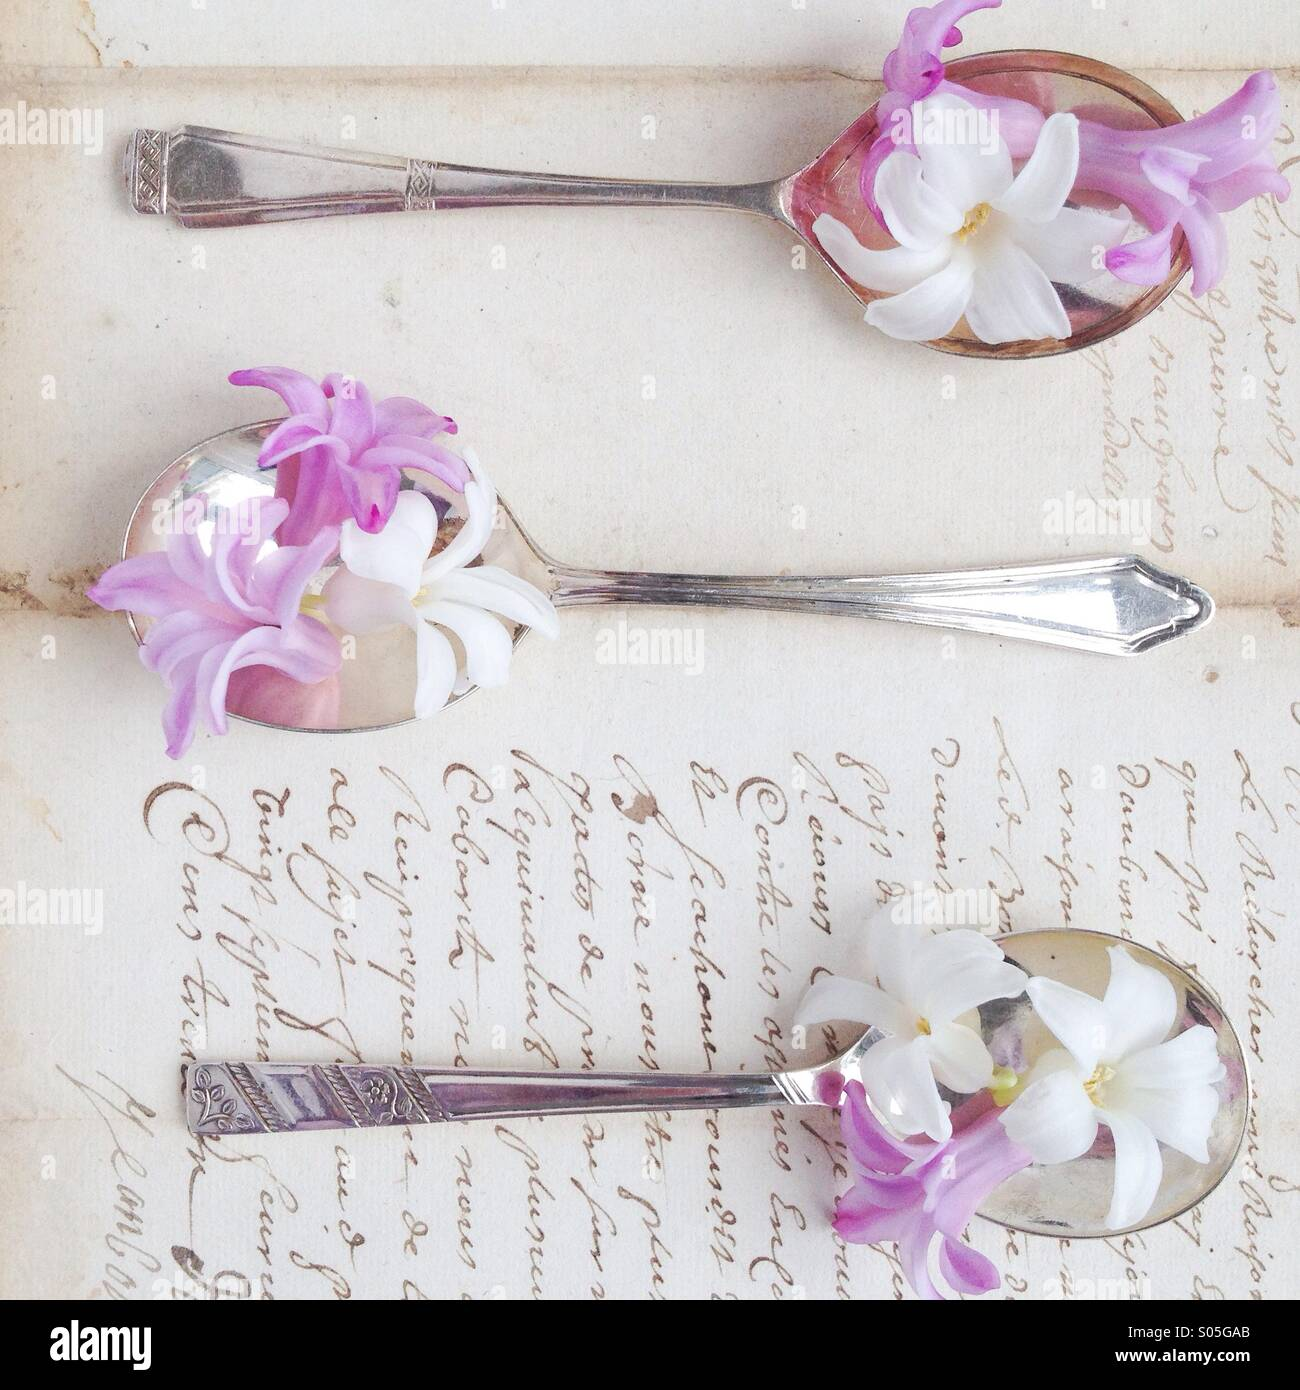 Hyacinths on vintage silver spoon and vintage letter - Stock Image